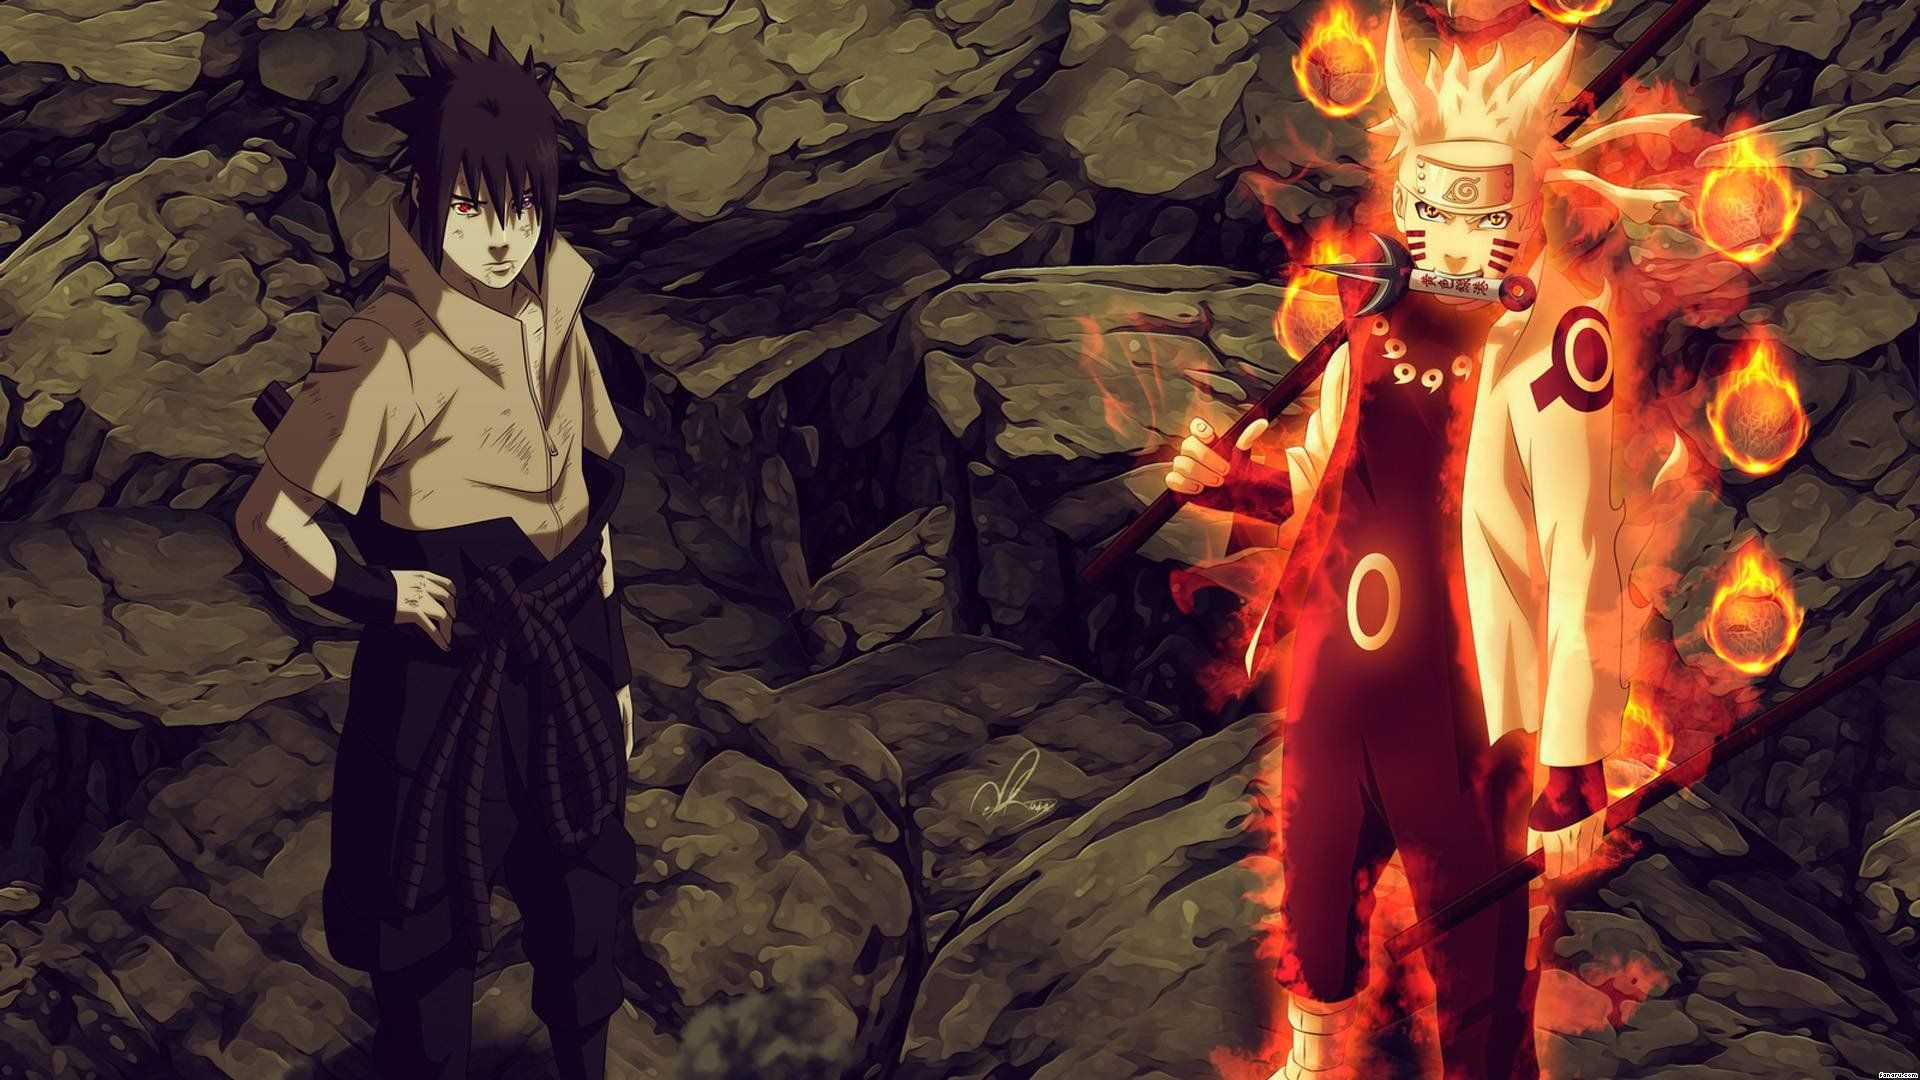 Naruto Vs Sasuke Super Hd Hd Desktop Wallpaper Widescreen 1600